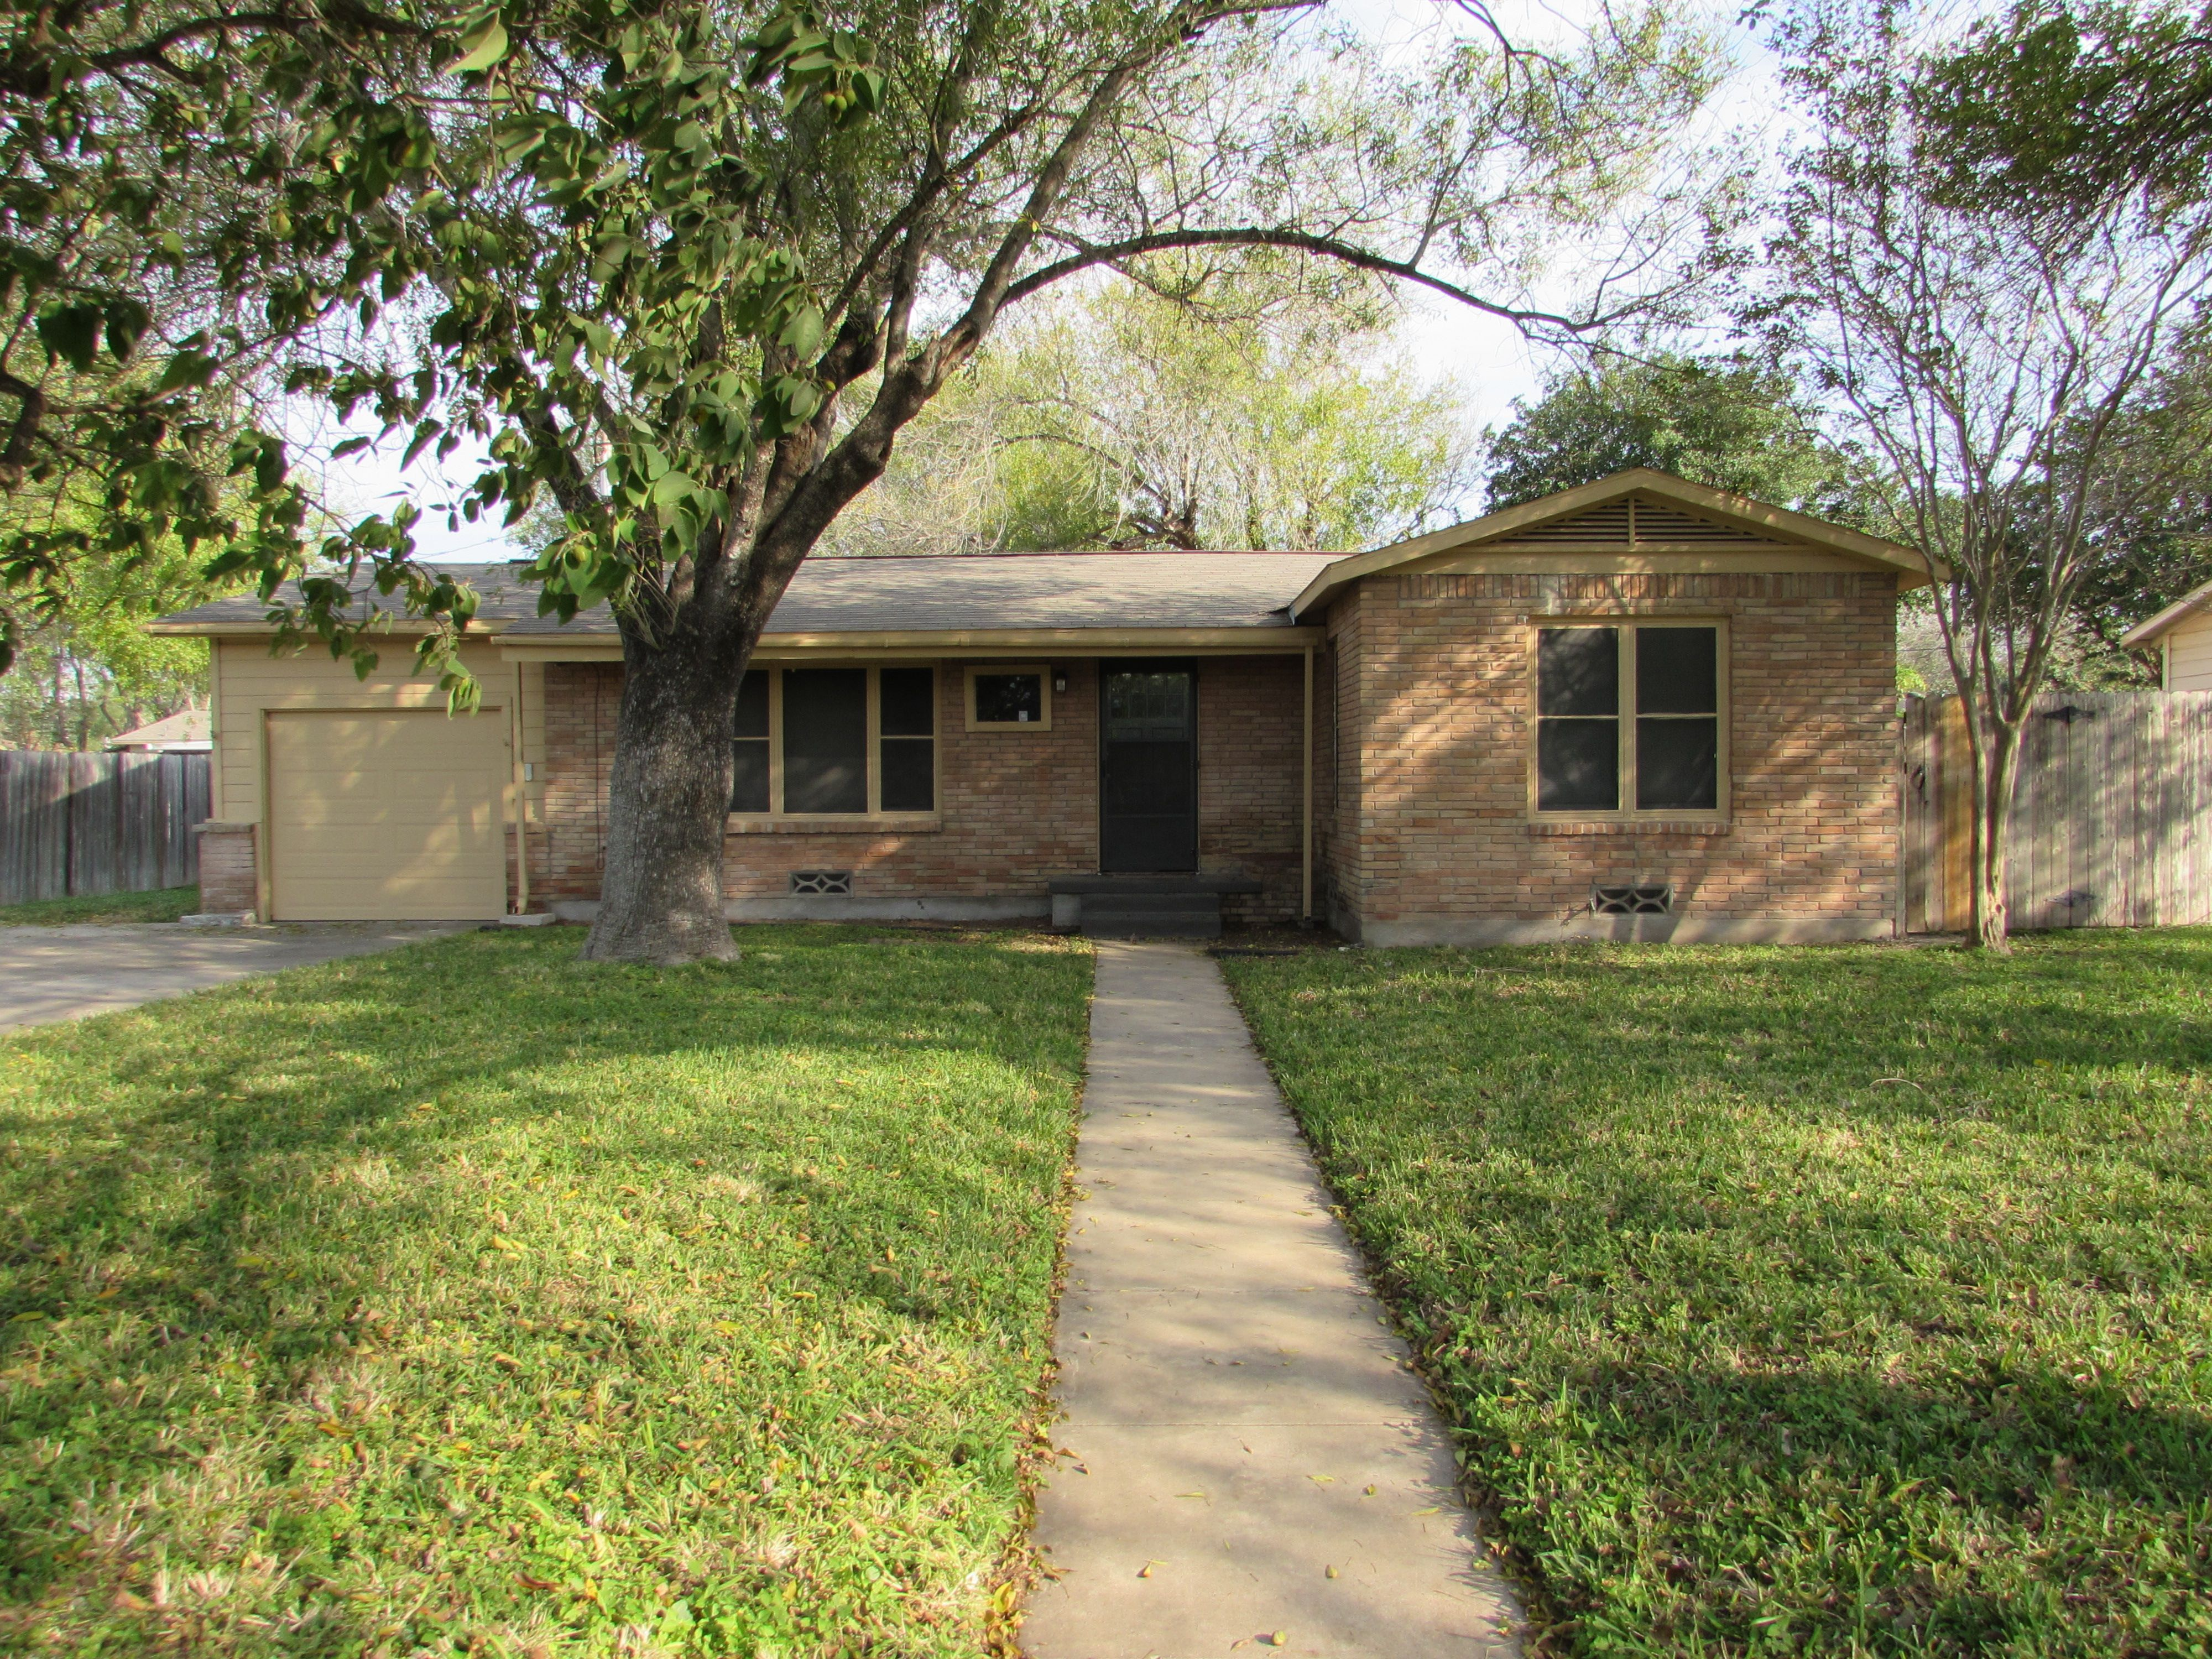 Family Memories Are Sure To Be Made On The Patio Of This 1319 SF Brick Home  In McAllen, TX. Great Features Include 2 Bedrooms, 1 Bathroom, Large Dining  Room ...